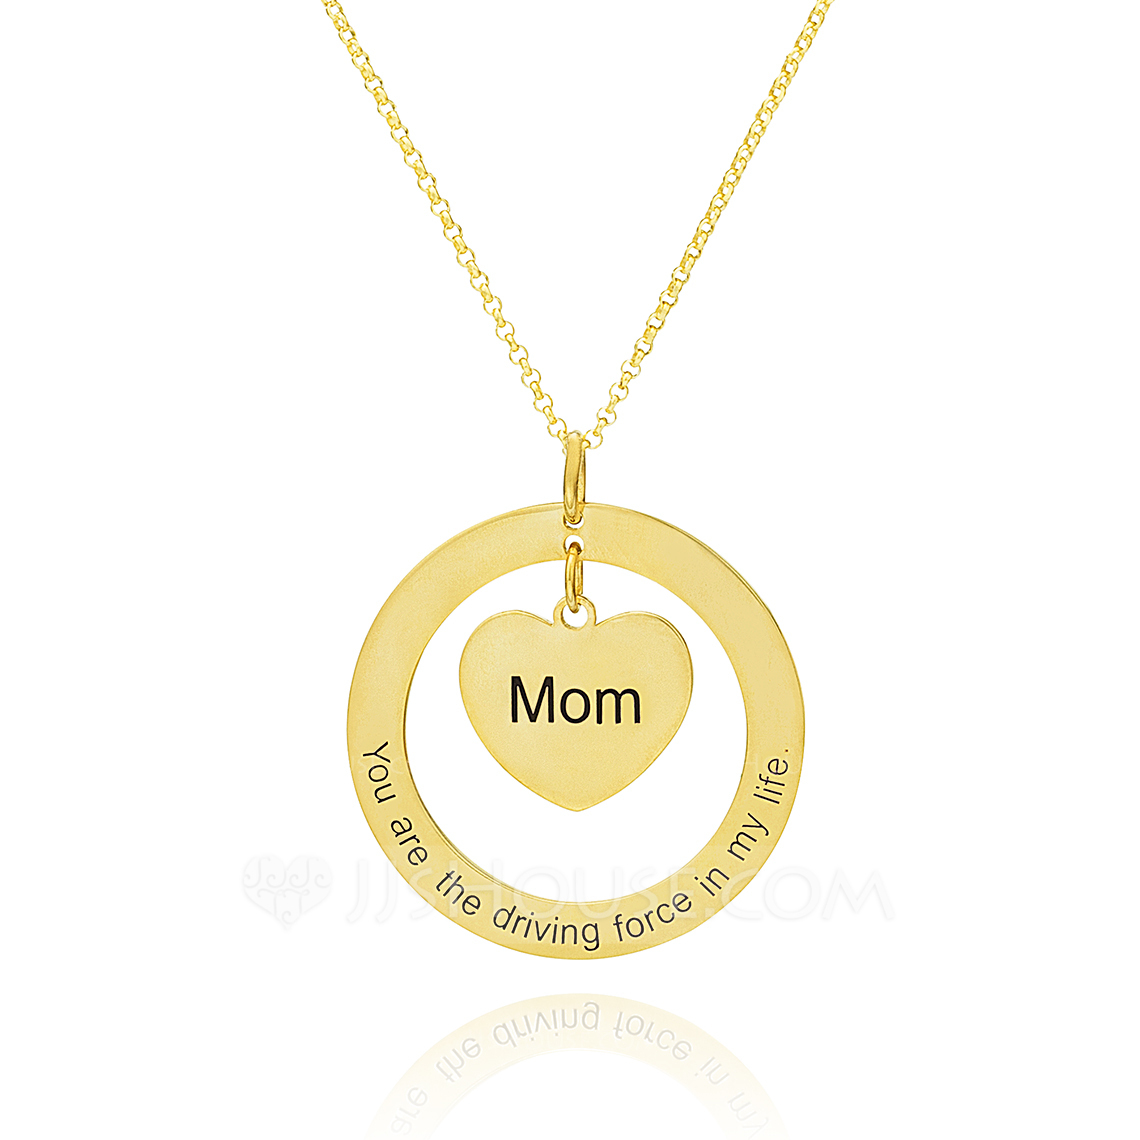 Custom 18k Gold Plated Silver Engraving/Engraved Circle Engraved Necklace Circle Necklace With Heart - Birthday Gifts Mother's Day Gifts